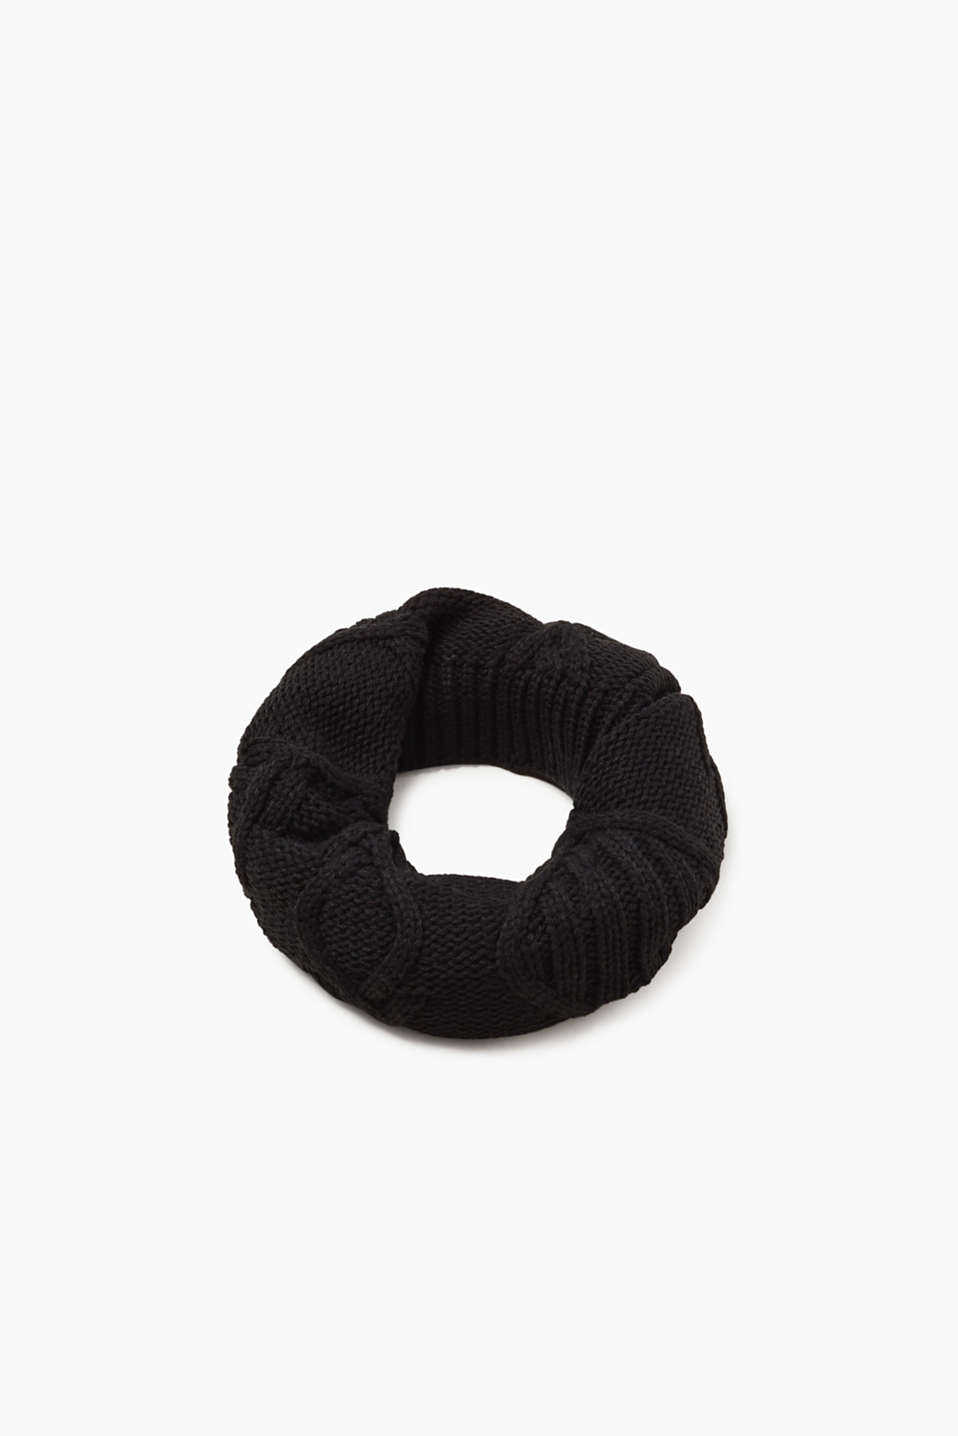 We love knitwear! This timeless snood is decorated with rib knit edges and cable patterns.